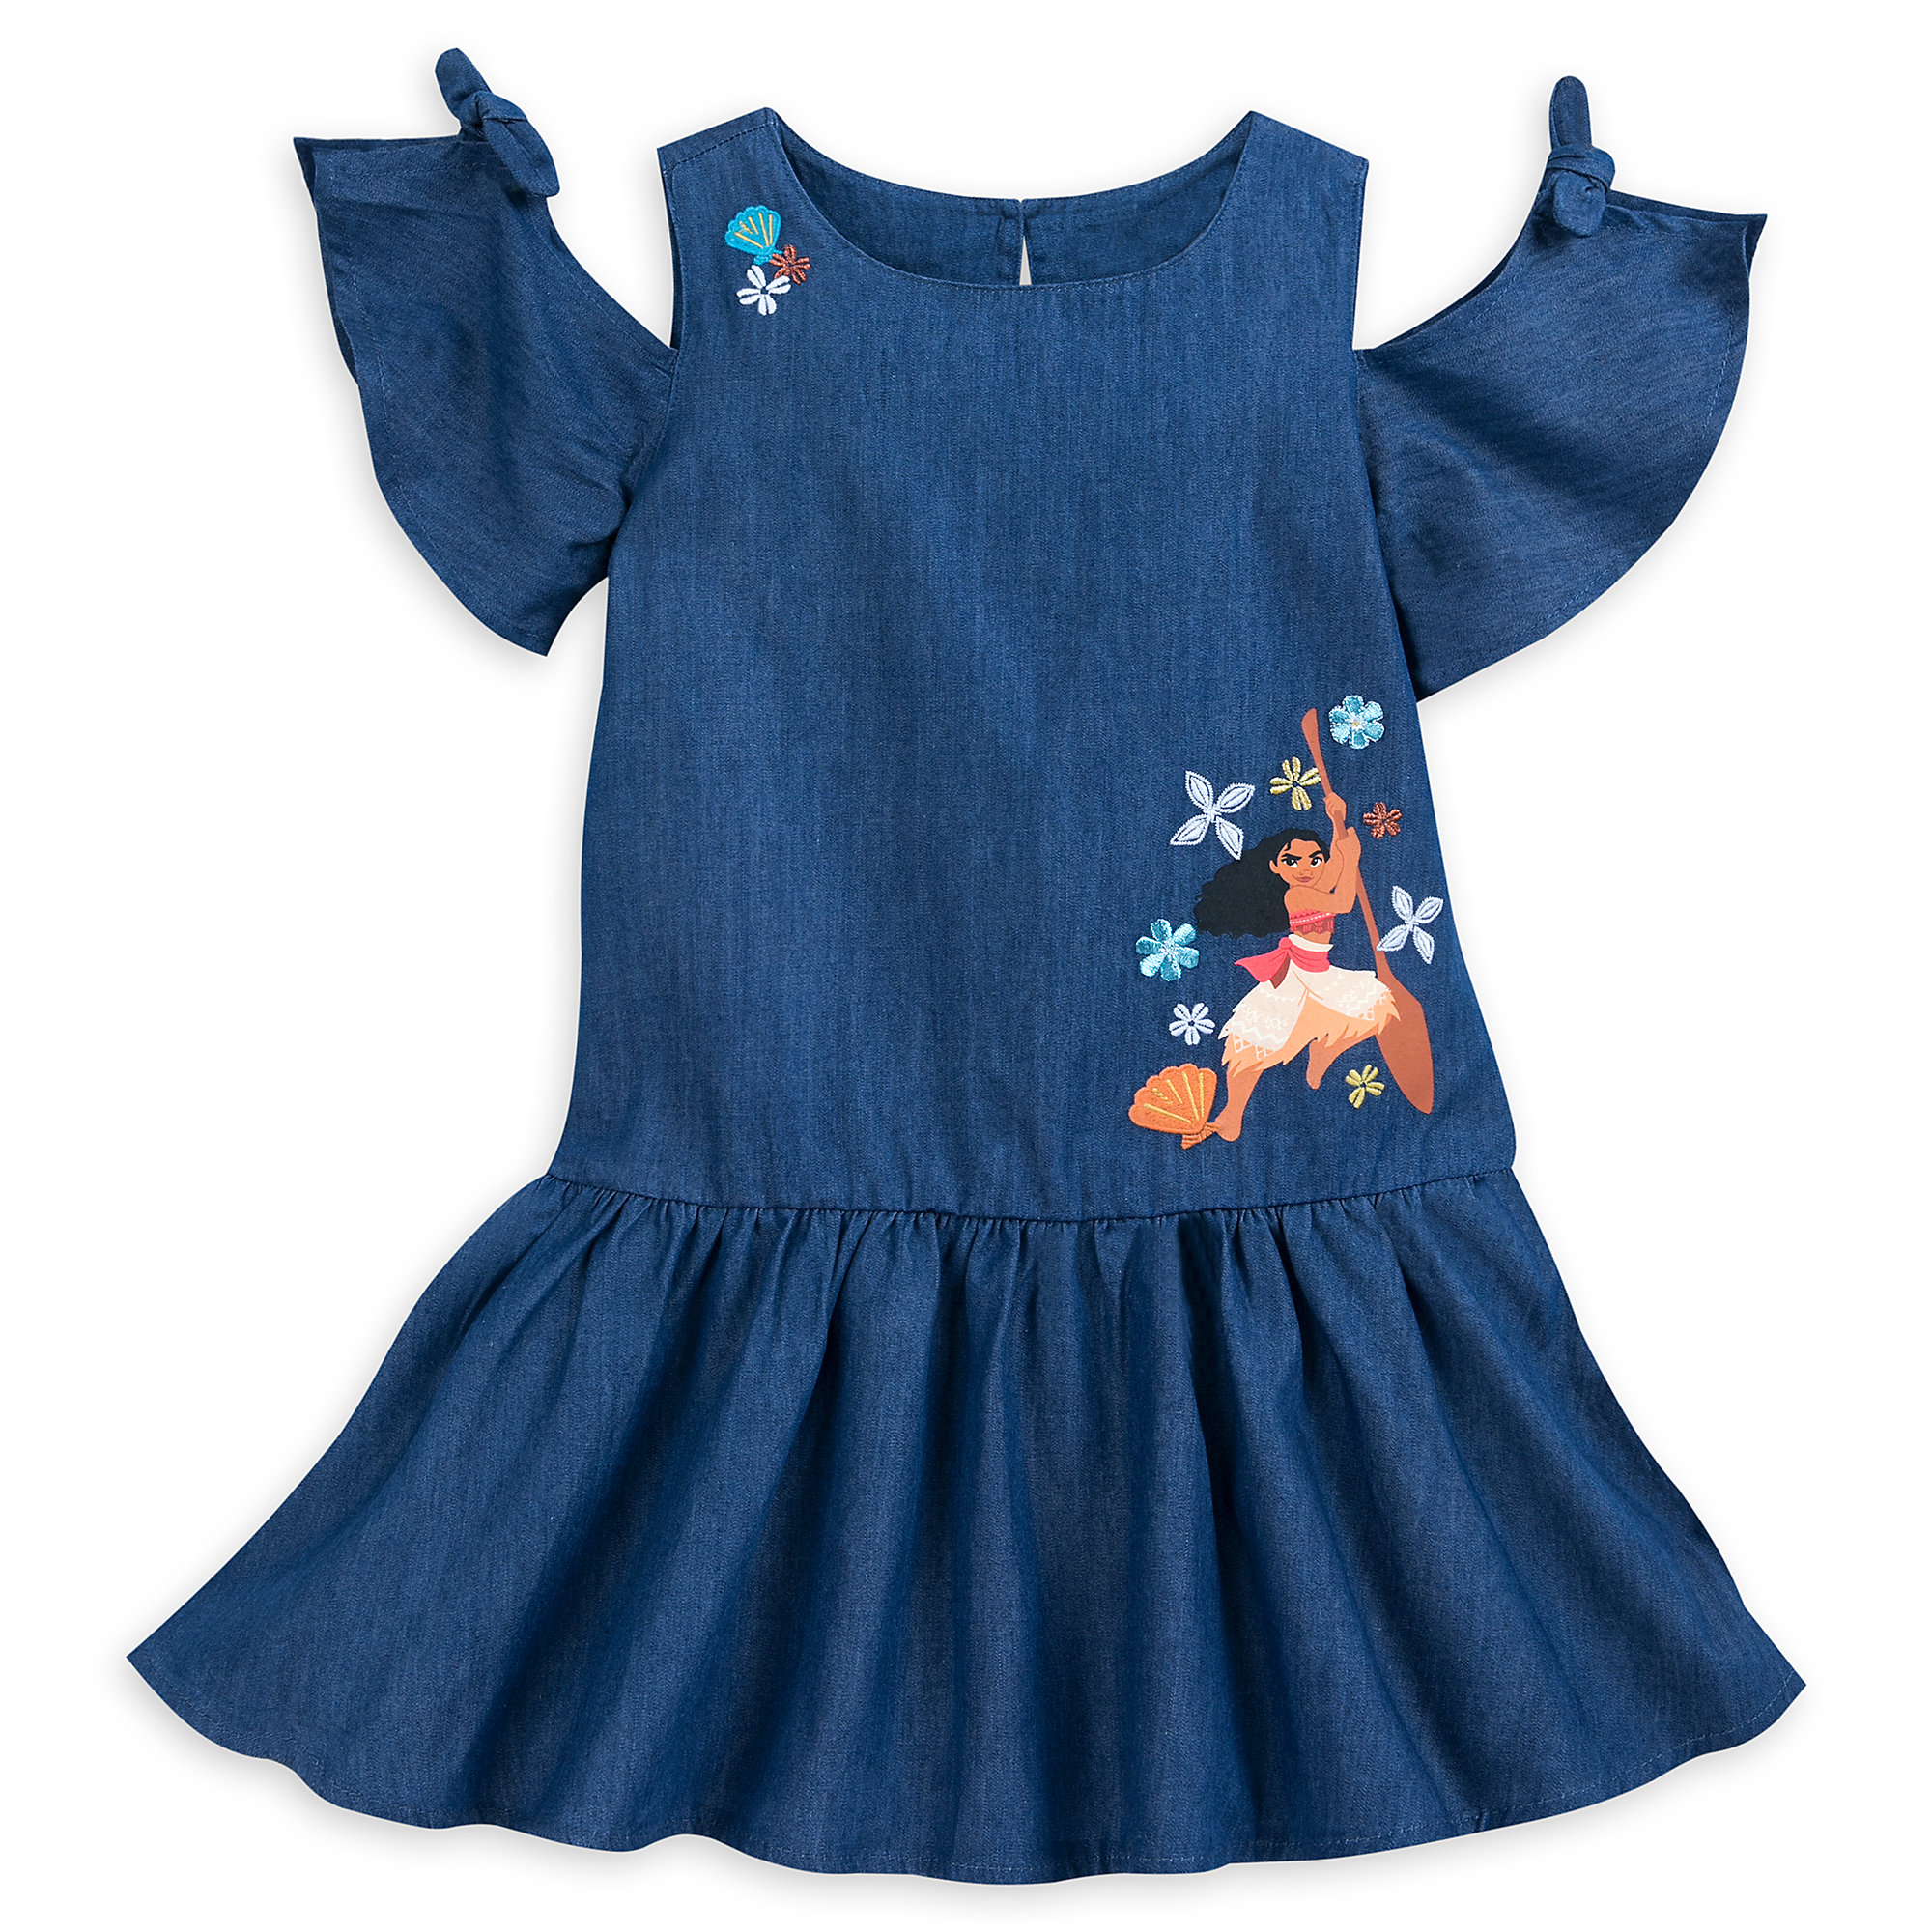 Moana Woven Dress for Girls